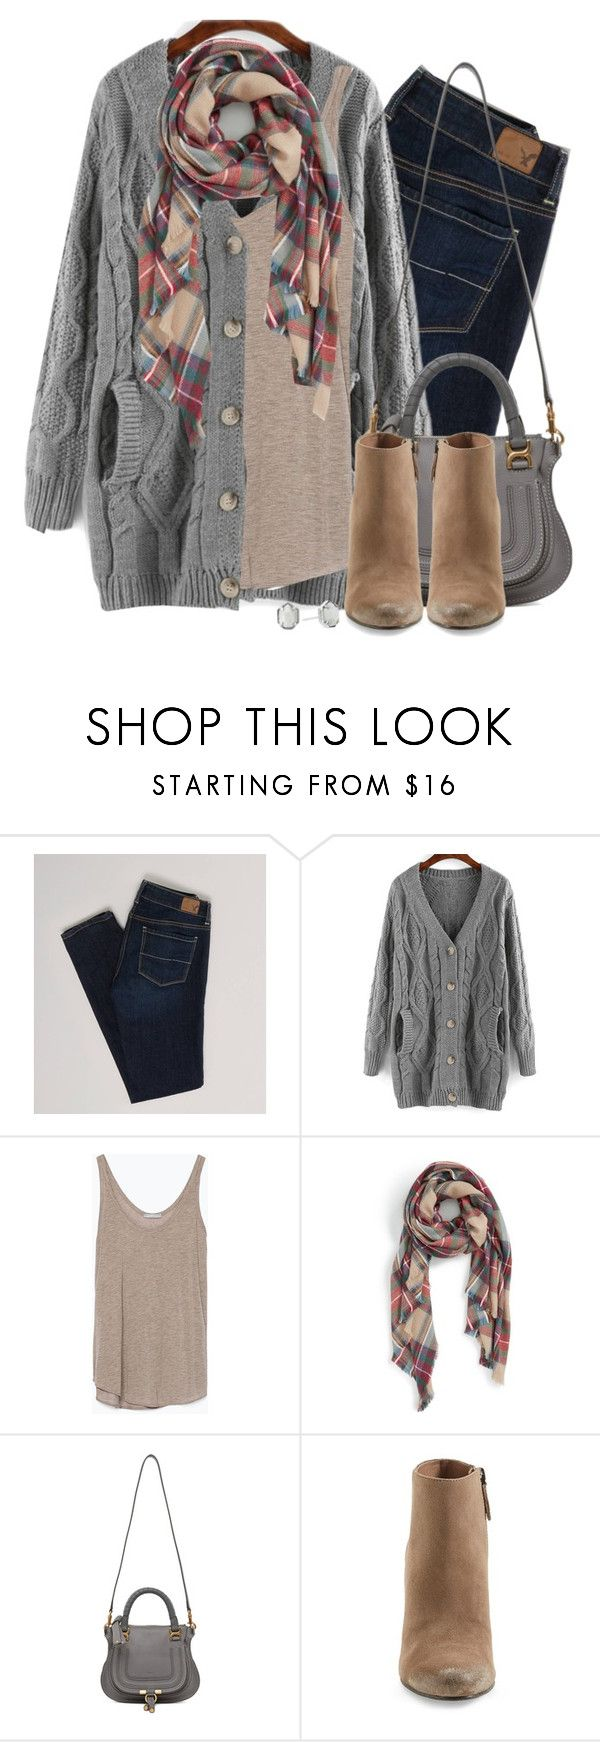 Gray cable knit, wedge boots & plaid scarf by steffiestaffie on Polyvore featuring Zara, American Eagle Outfitters, Dolce Vita, Chloé, Kendra Scott and Sole Society